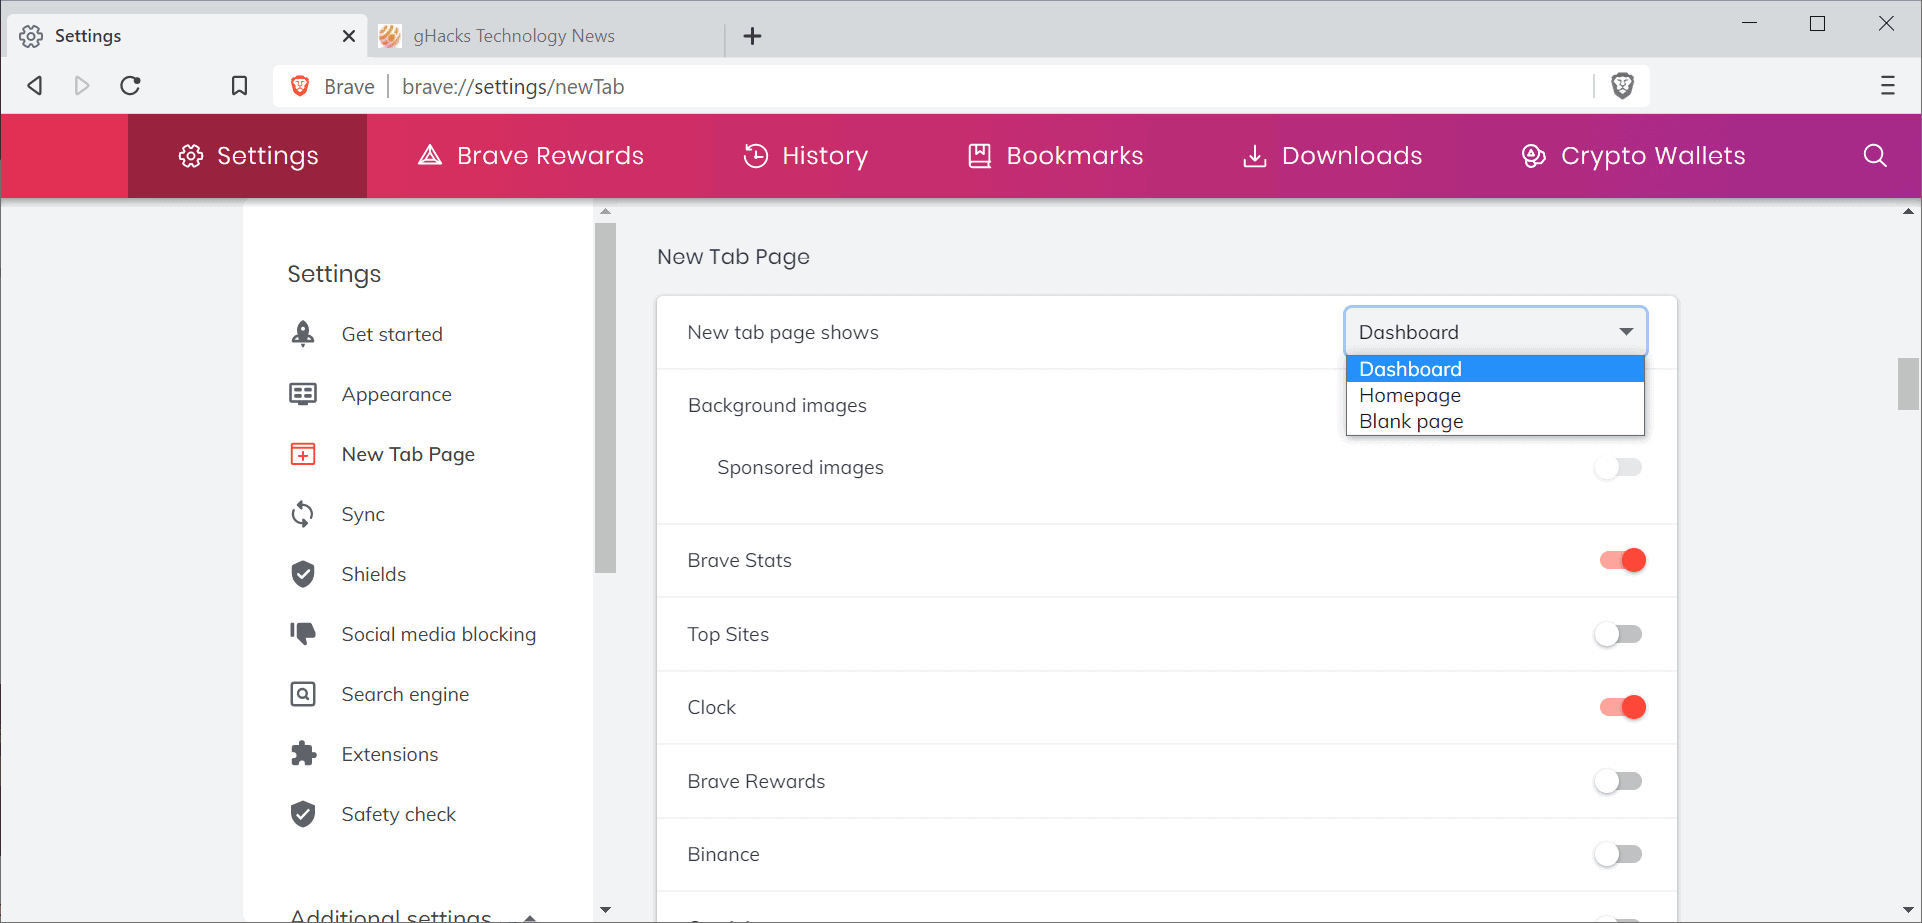 brave new tab page shows